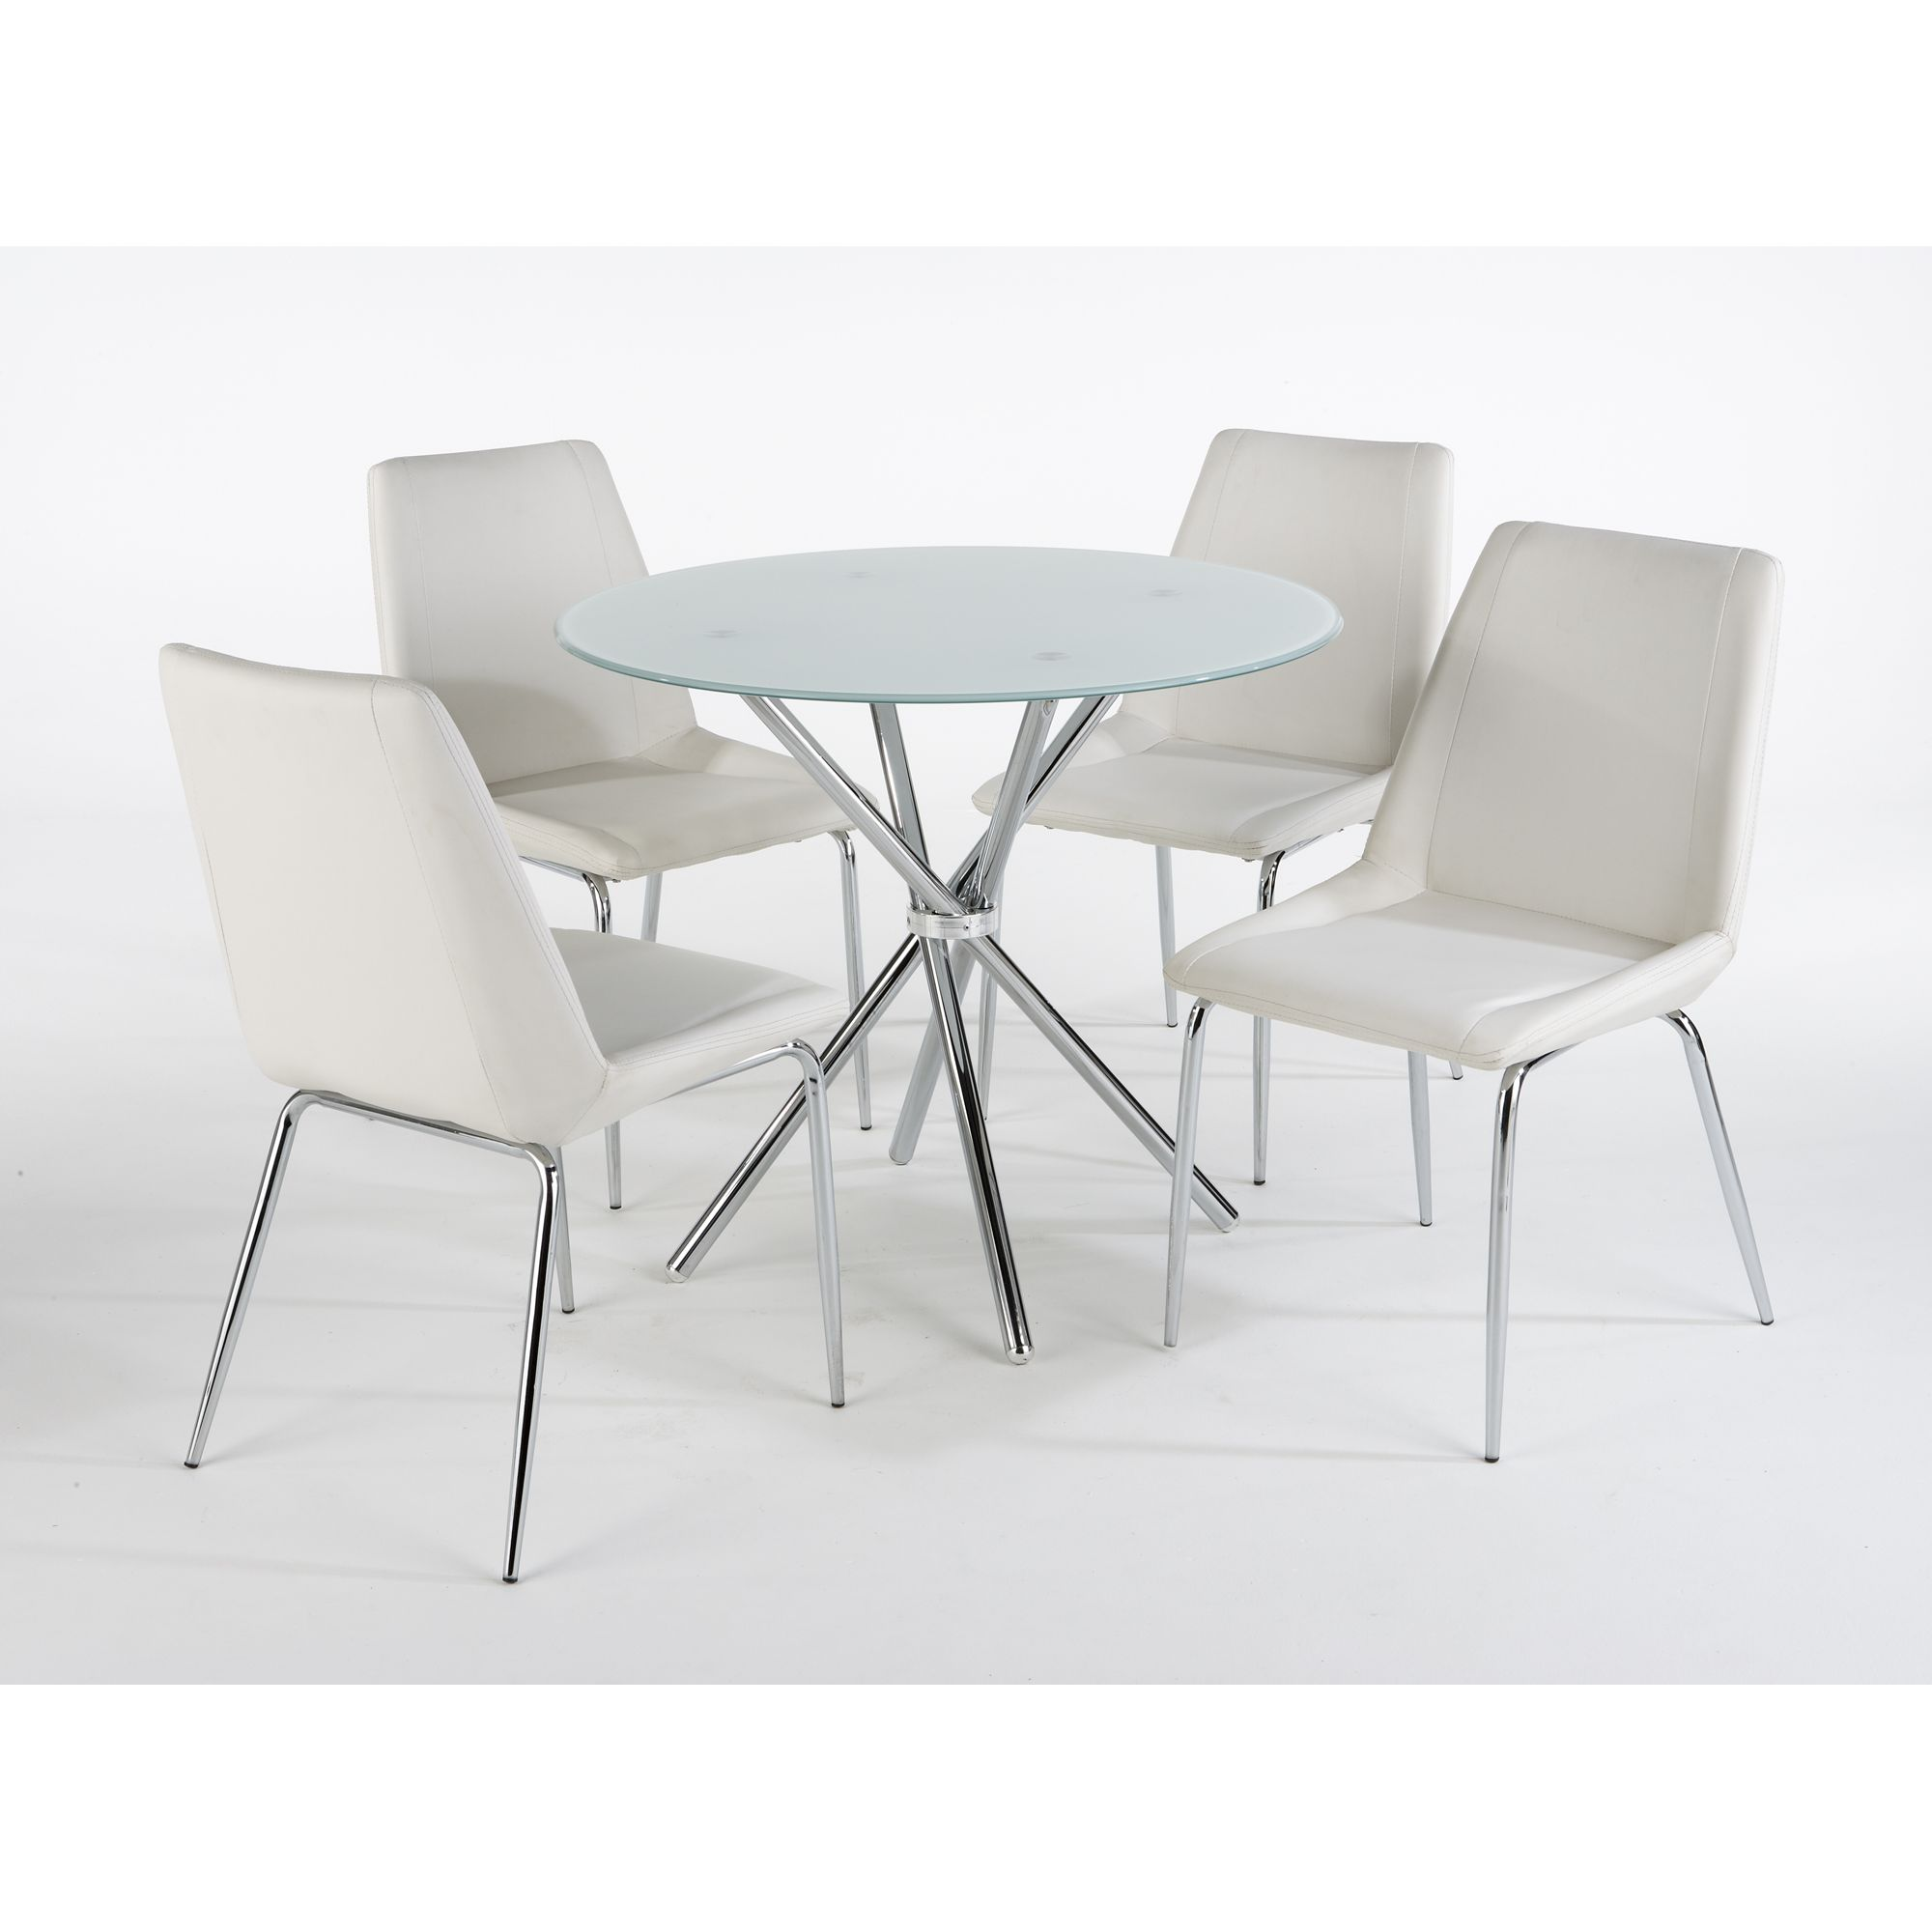 Elements Miami 5 Piece Dining Table Set - Frosted White at Tesco Direct